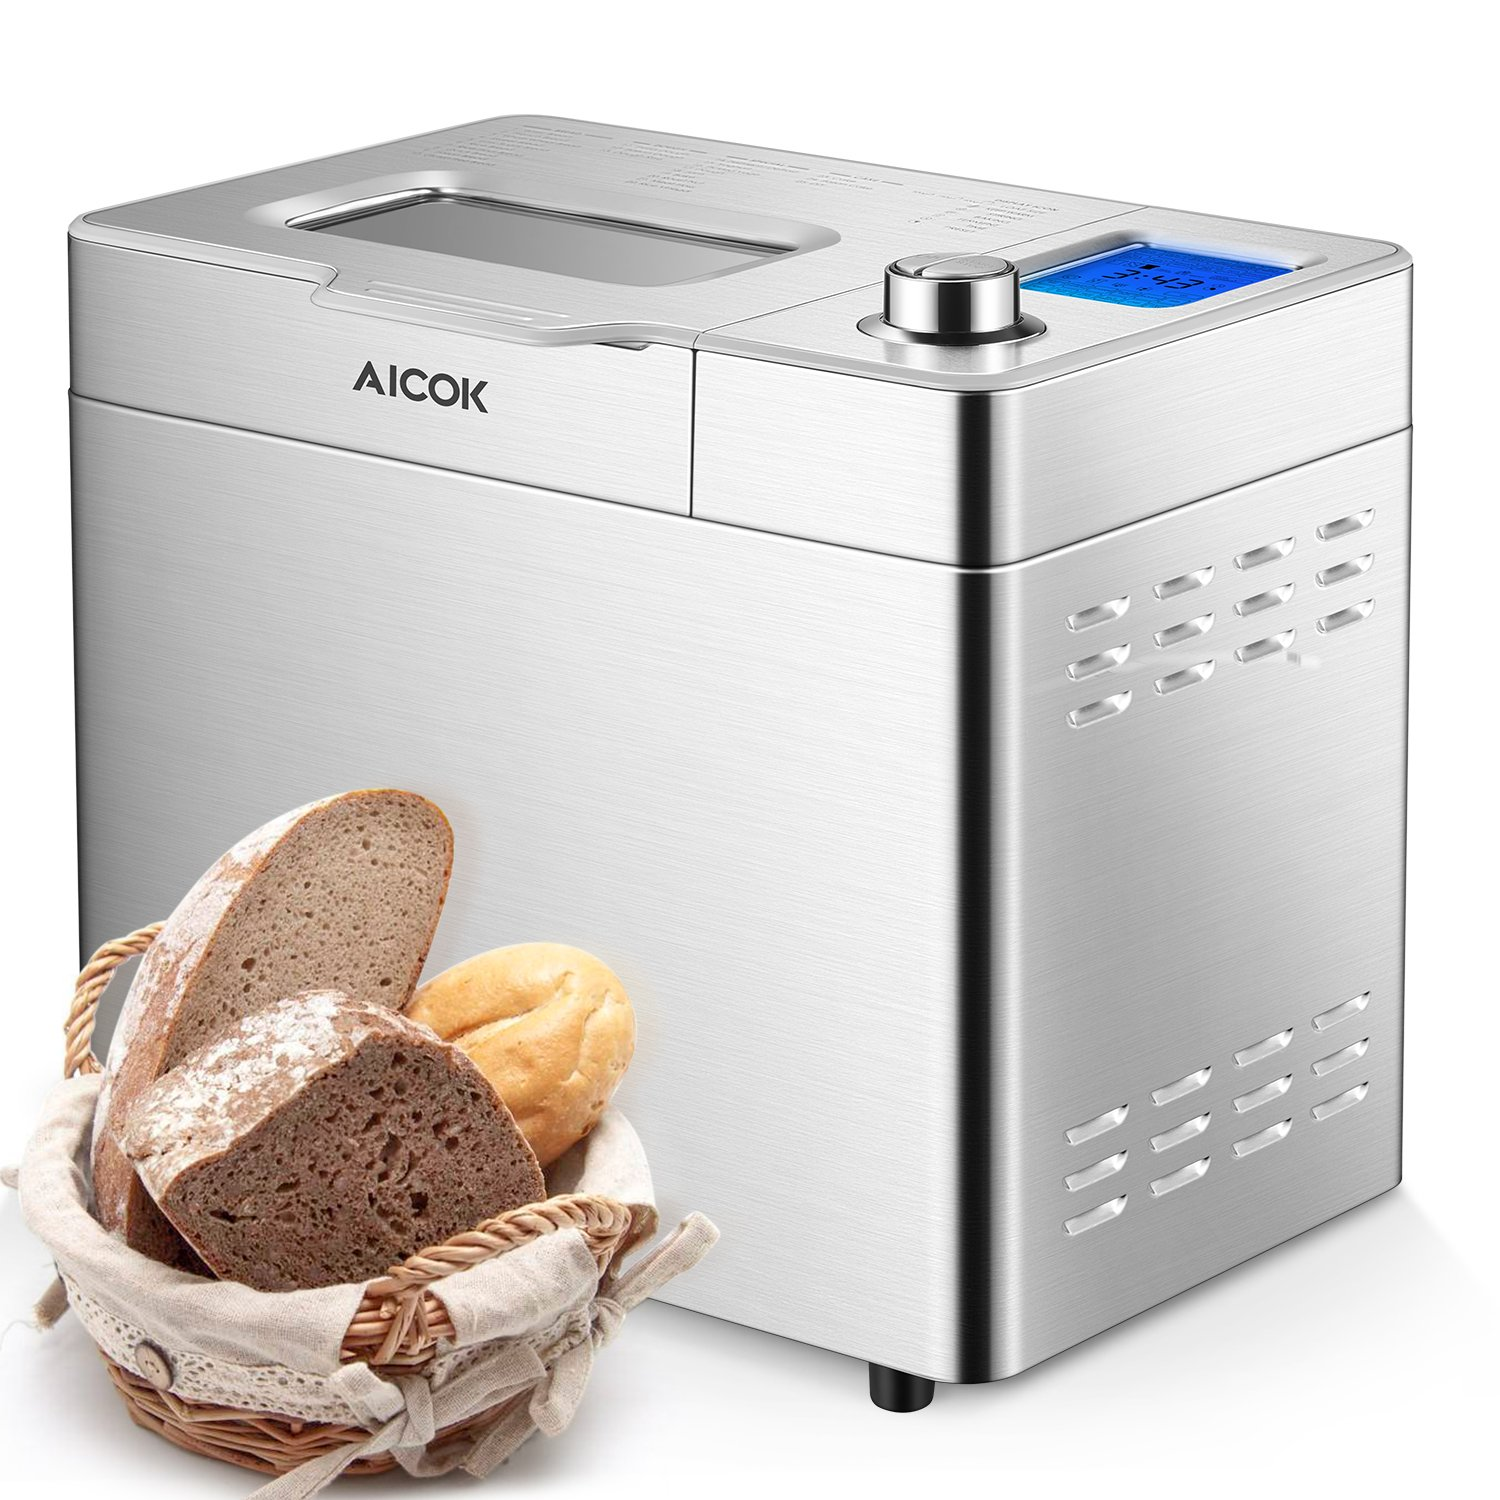 Aicok Stainless Steel Bread Machine, 2LB 25-in-1 Programmable XL Bread Maker with Fruit Nut Dispenser, Nonstick Ceramic Pan, 3 Loaf Sizes 3 Crust Colors, Gluten-Free Setting, Reserve& Keep Warm Set by AICOK